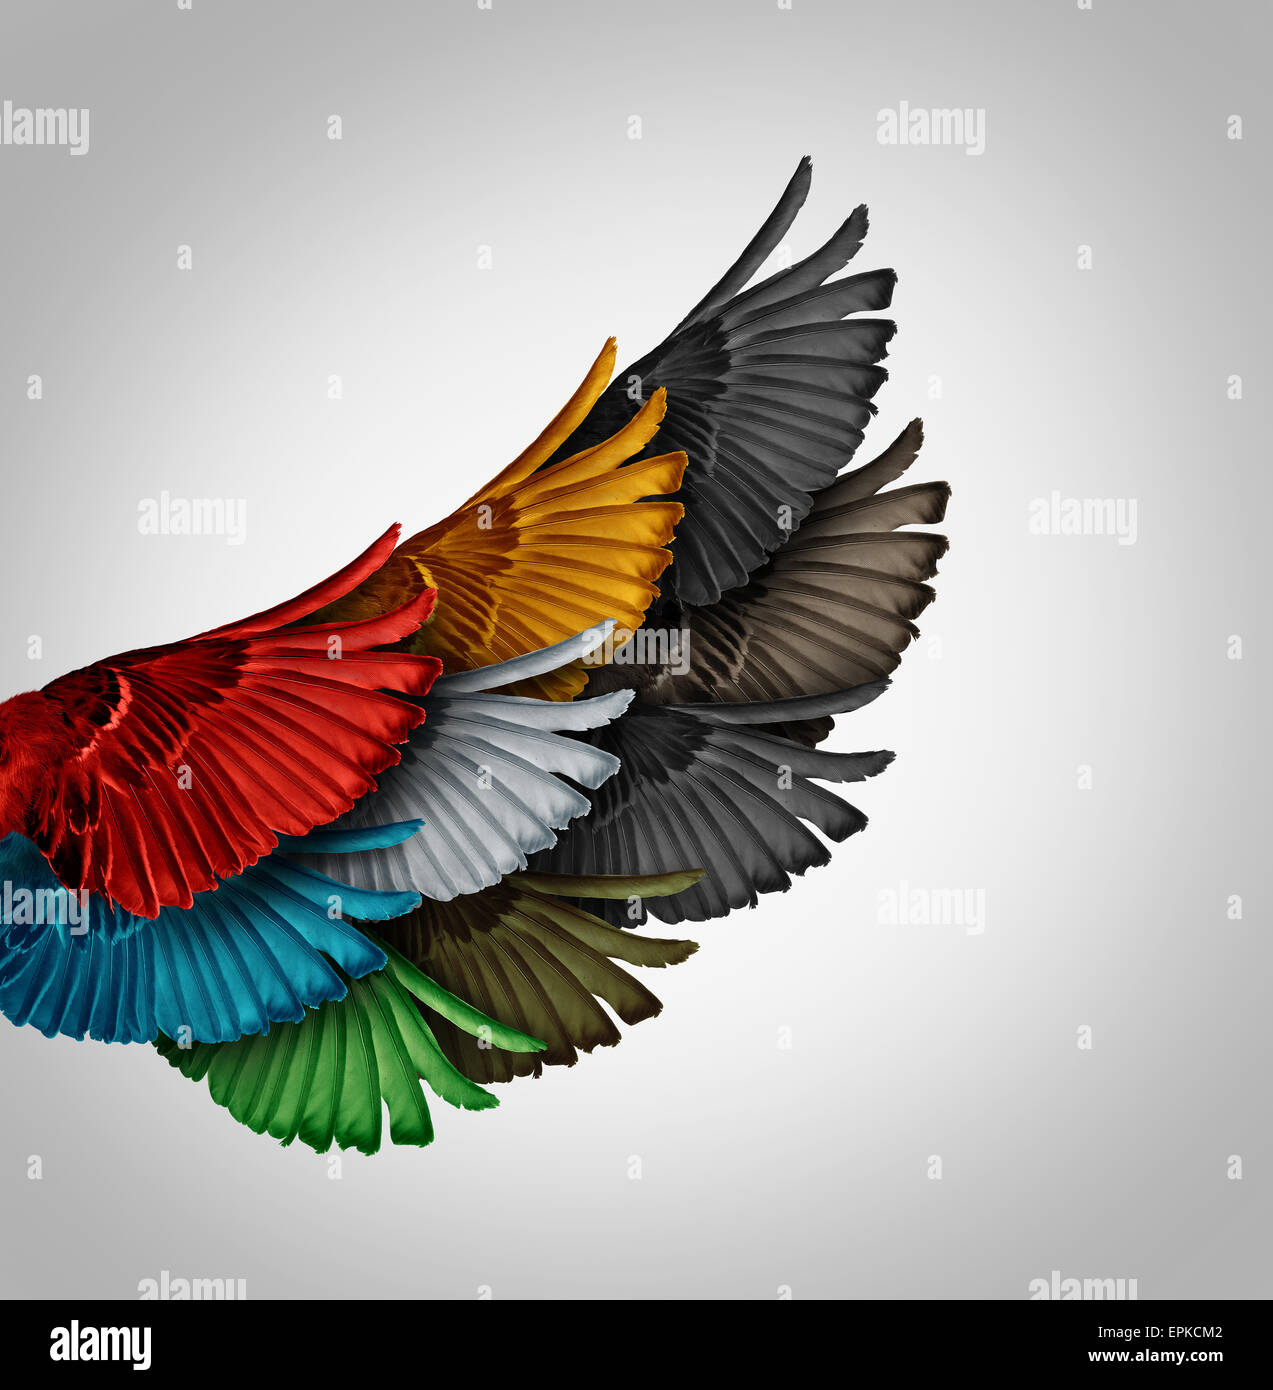 Alliance concept and working together business idea as a diverse group of bird wings coming as one to form a giant - Stock Image